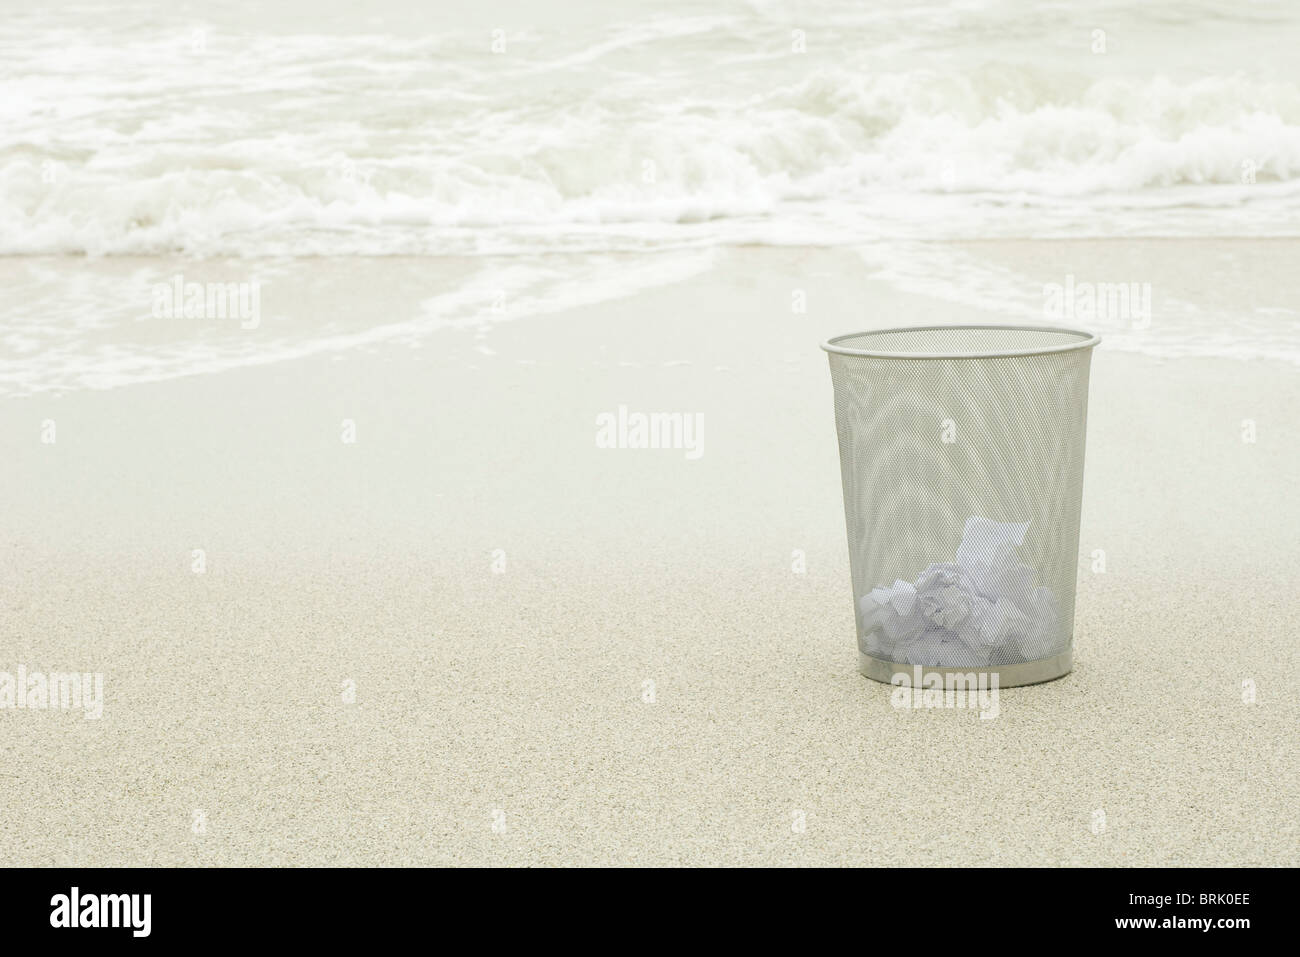 Wastepaper basket on beach - Stock Image